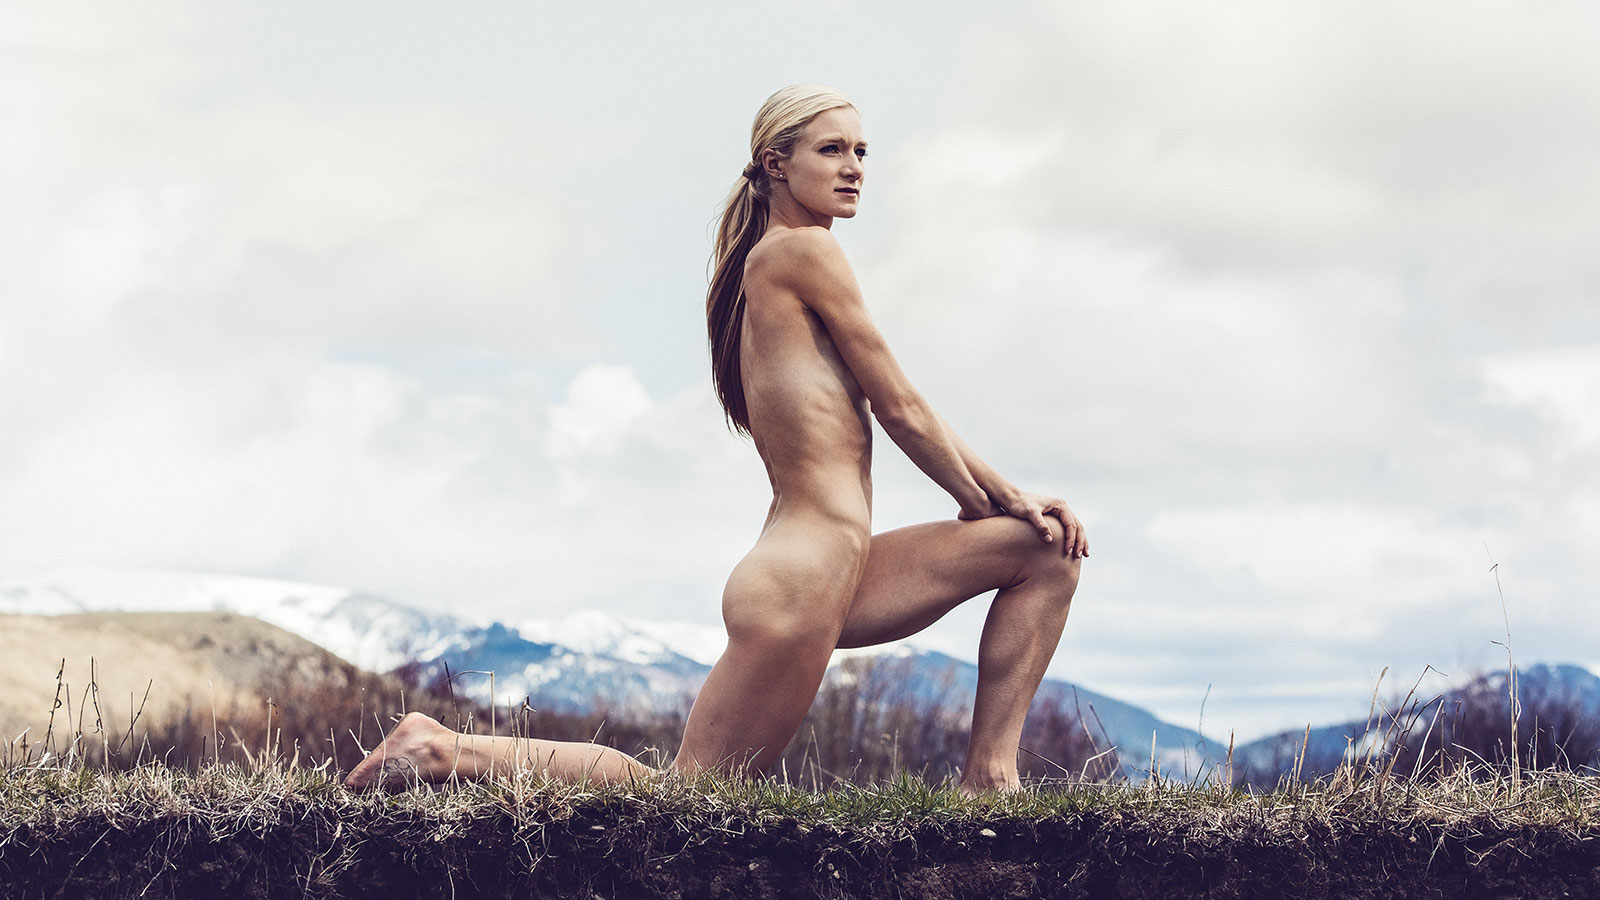 Emma Coburn, Steeplechase, featured in the Body Issue 2016: Fully Exposed on ESPN the Magazine